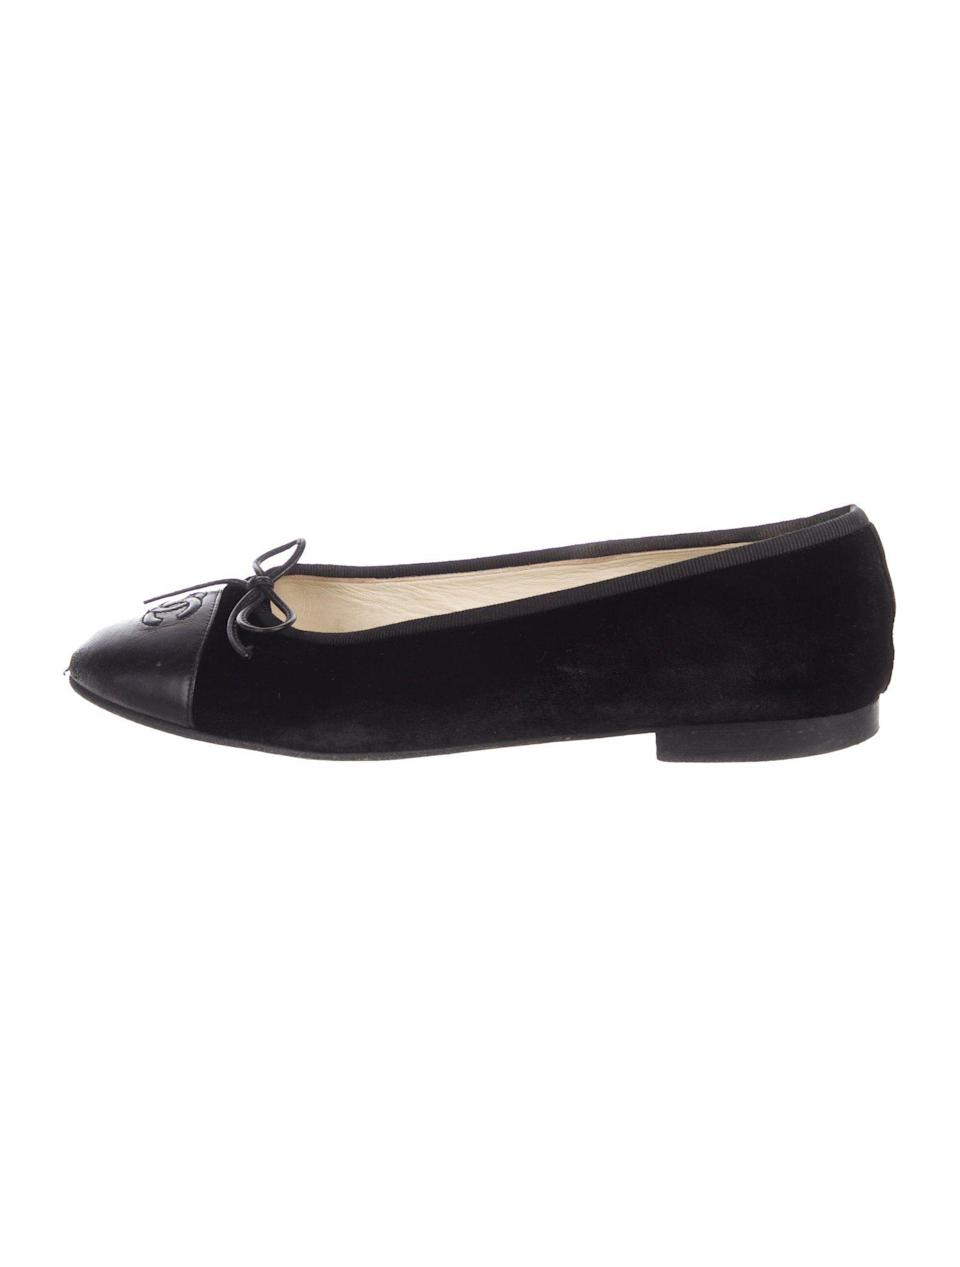 And Chanel ballet flats? What could be more French?